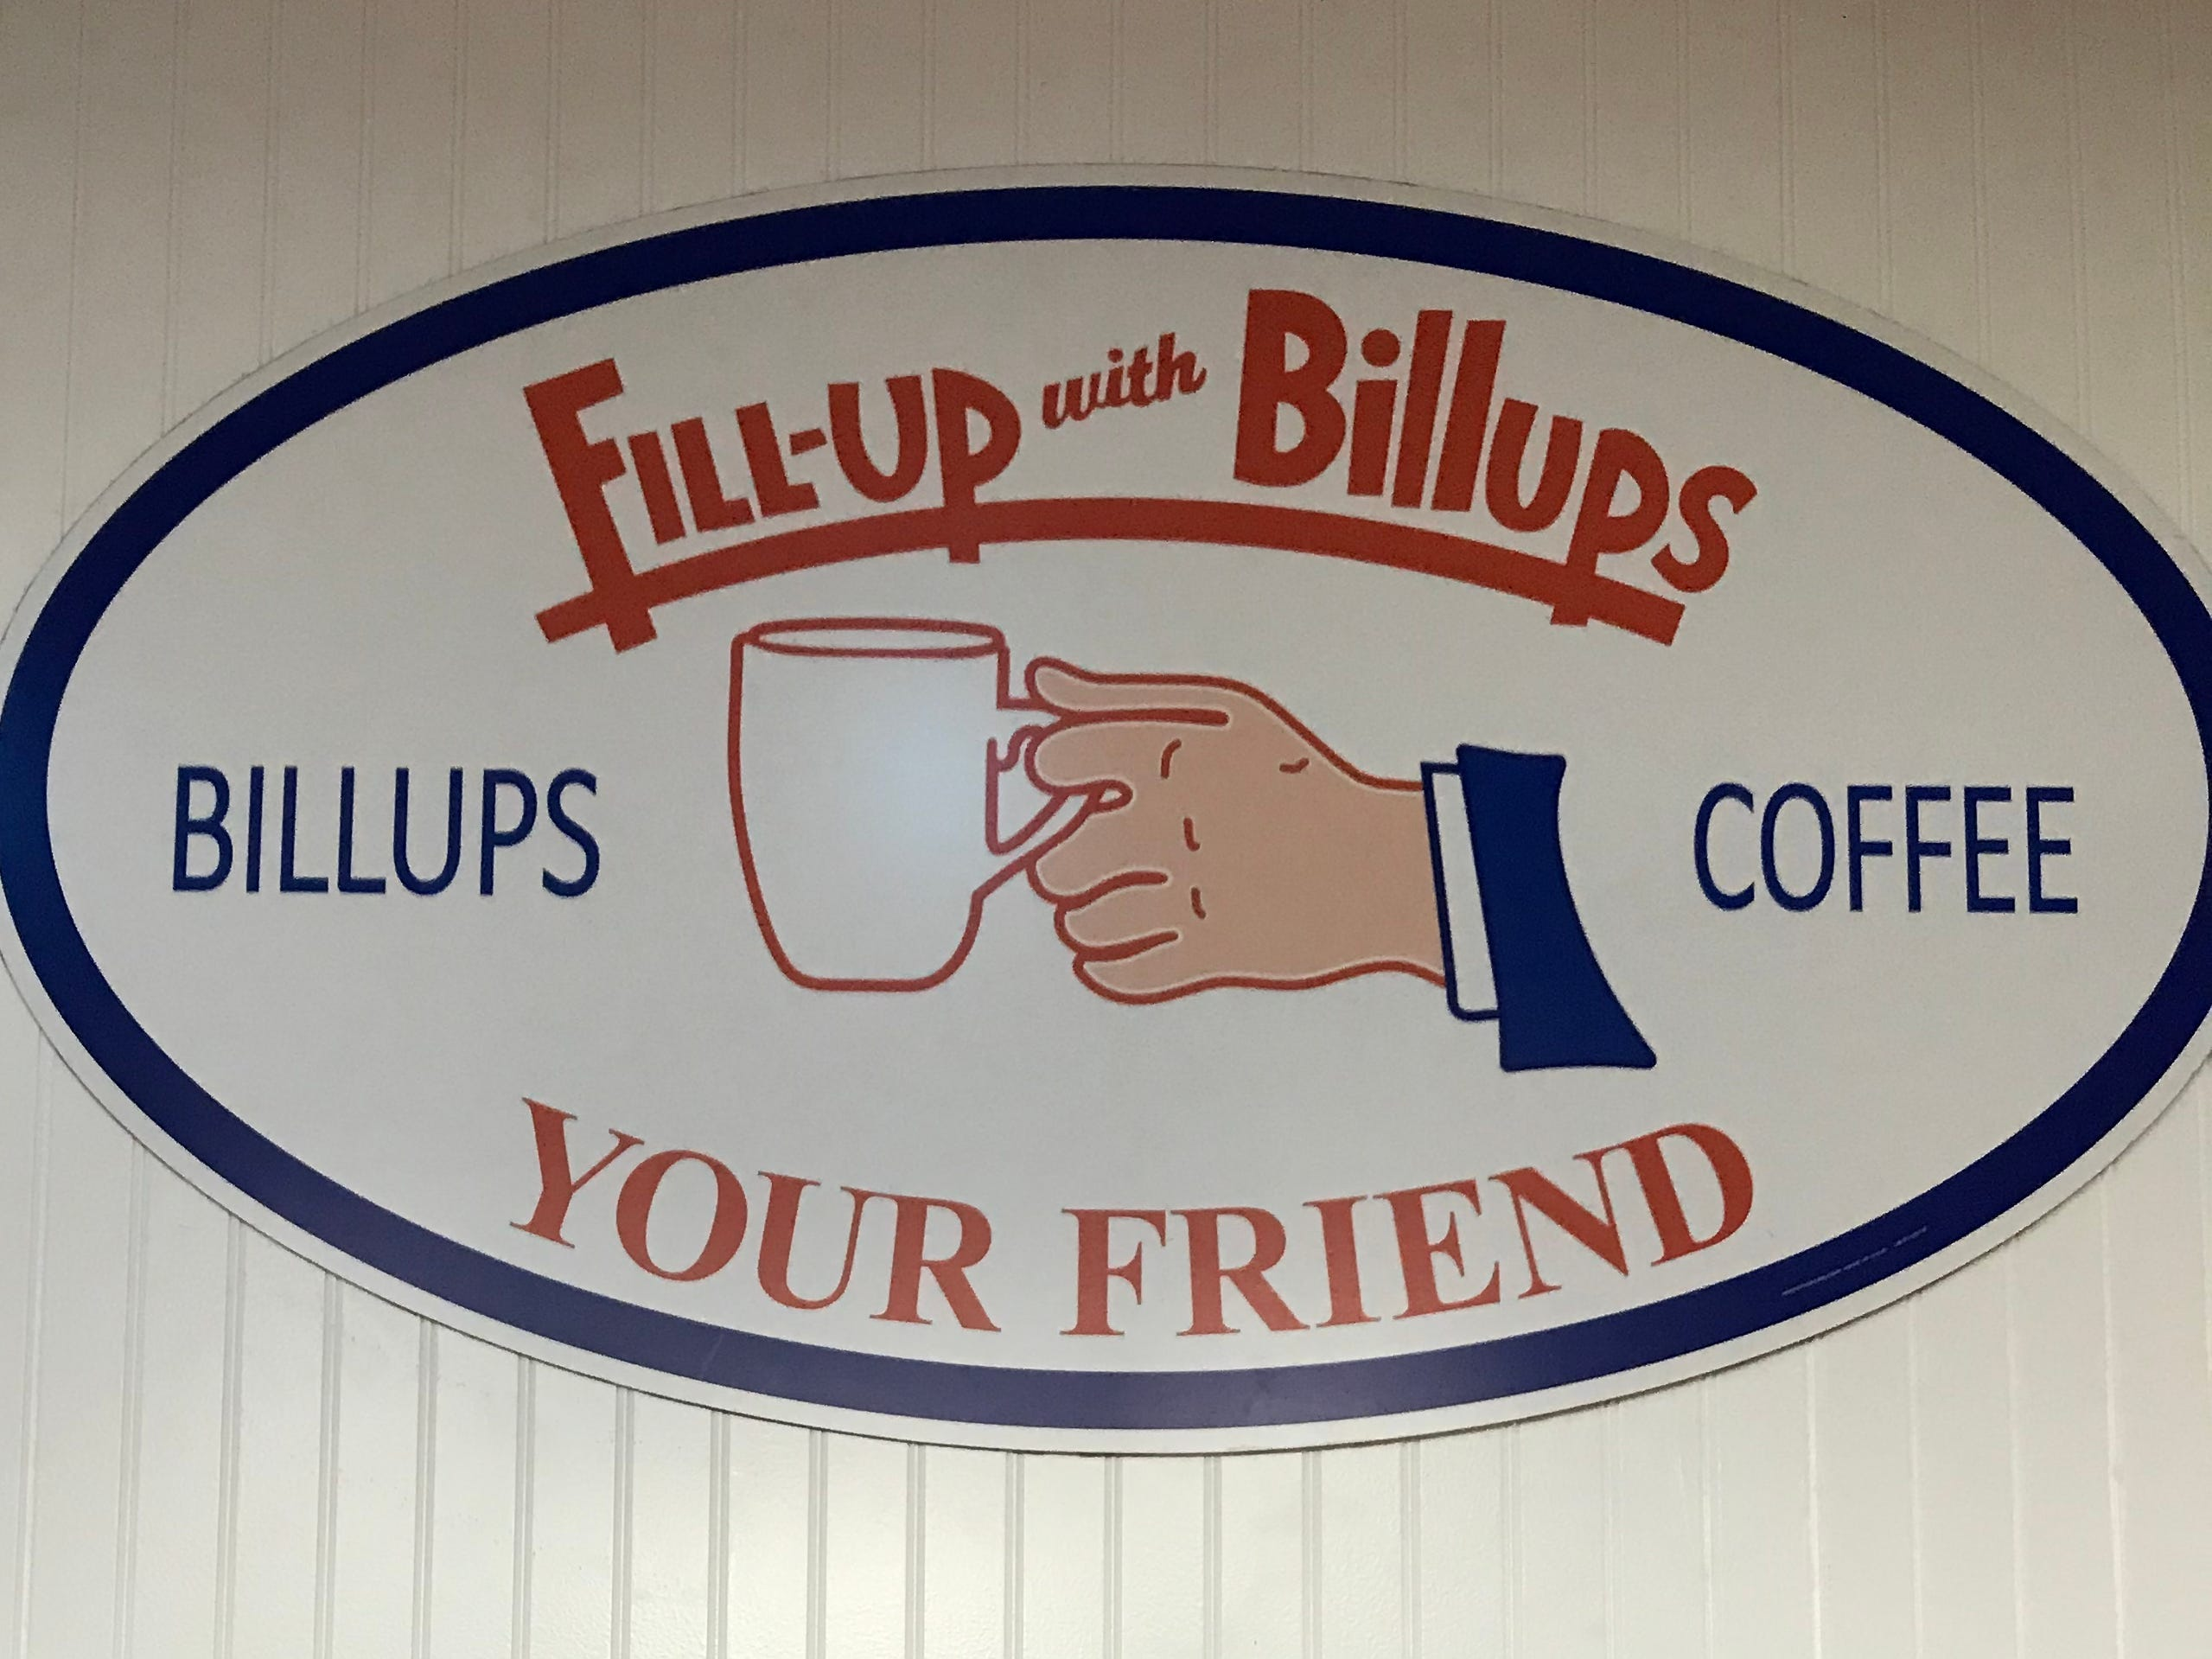 A vintage-style sign welcomes guests to Fill-Up with Billups in Madison.